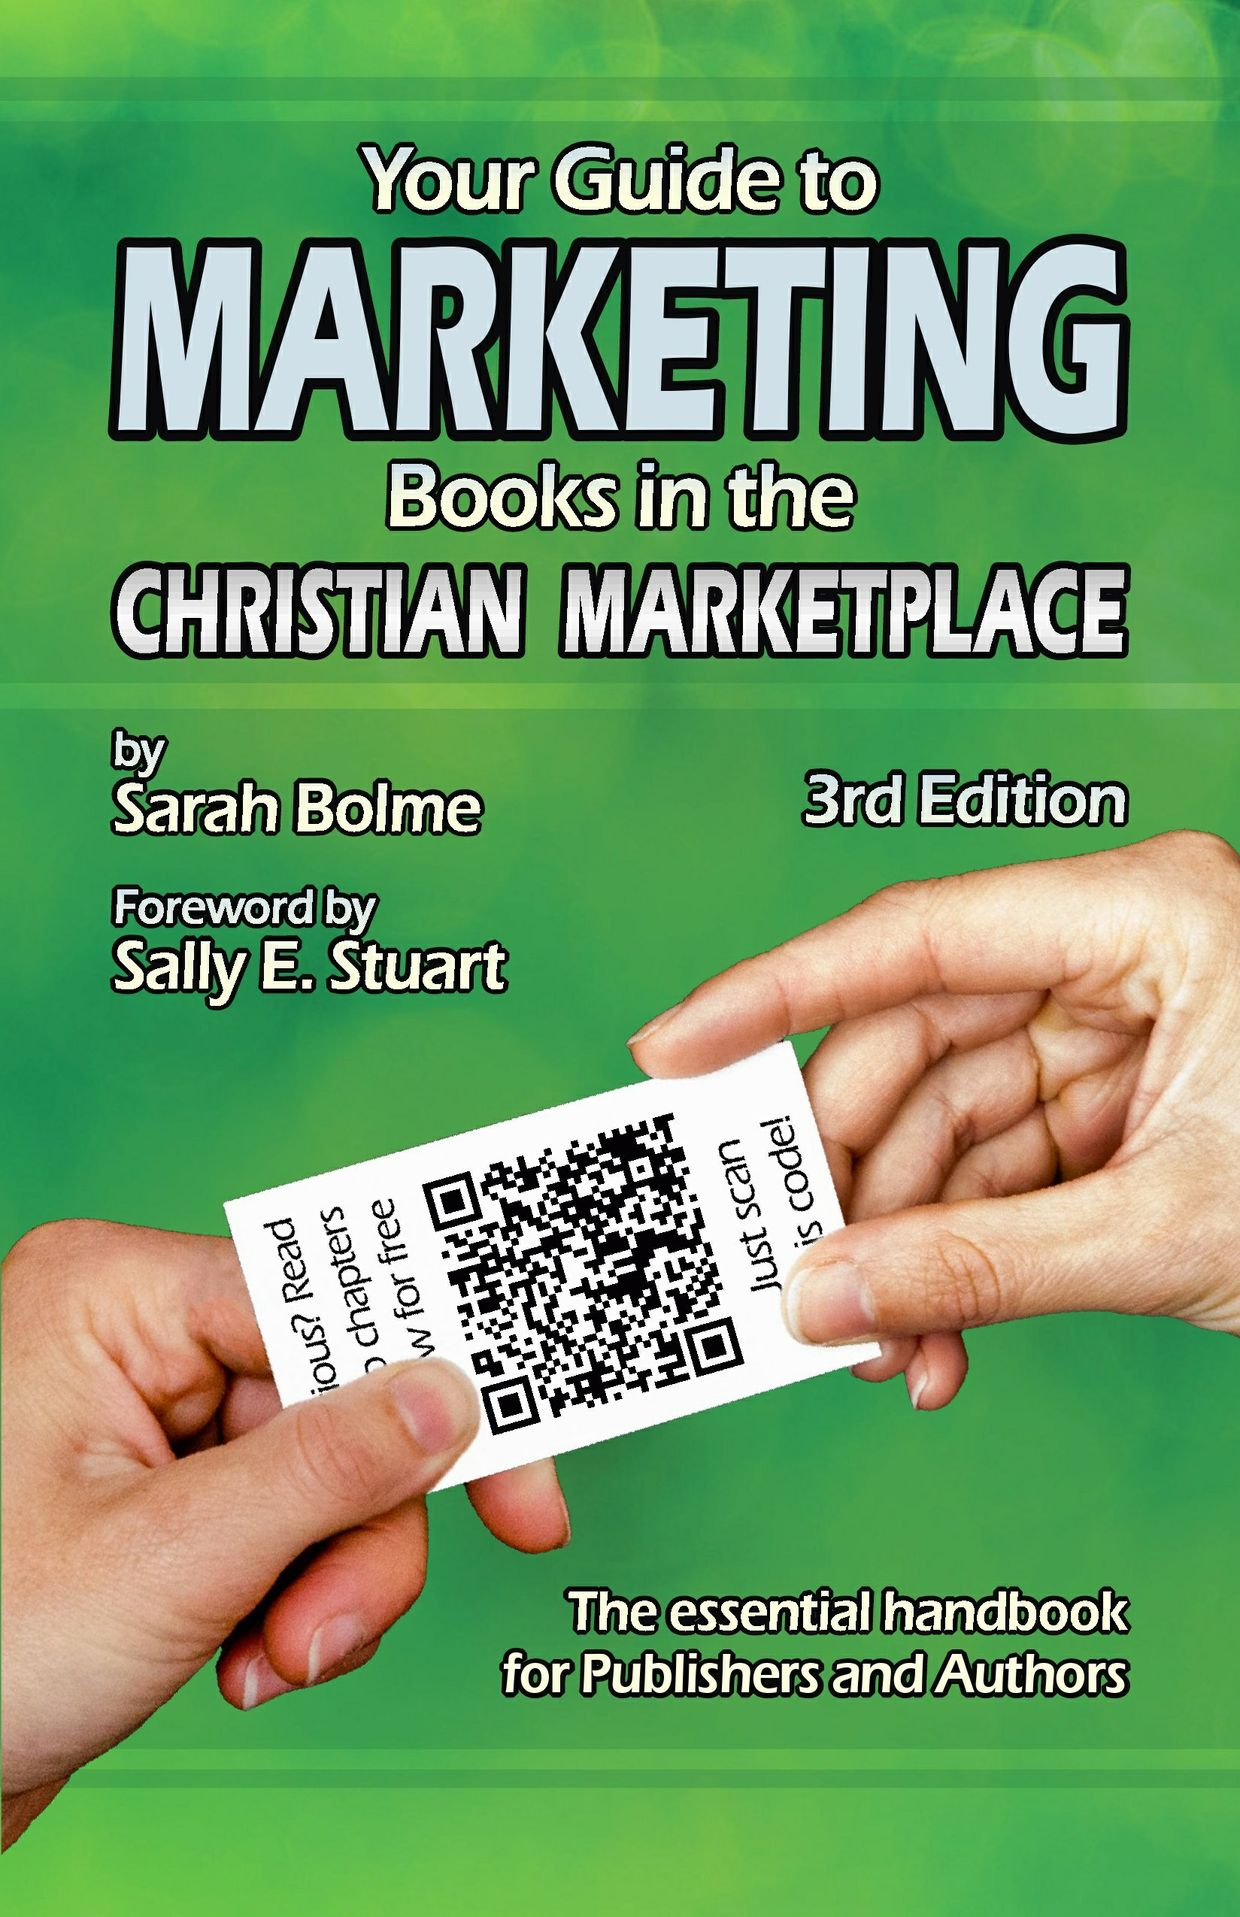 Your Guide to Marketing Books in the Christian Marketplace - Third Edition - PDF